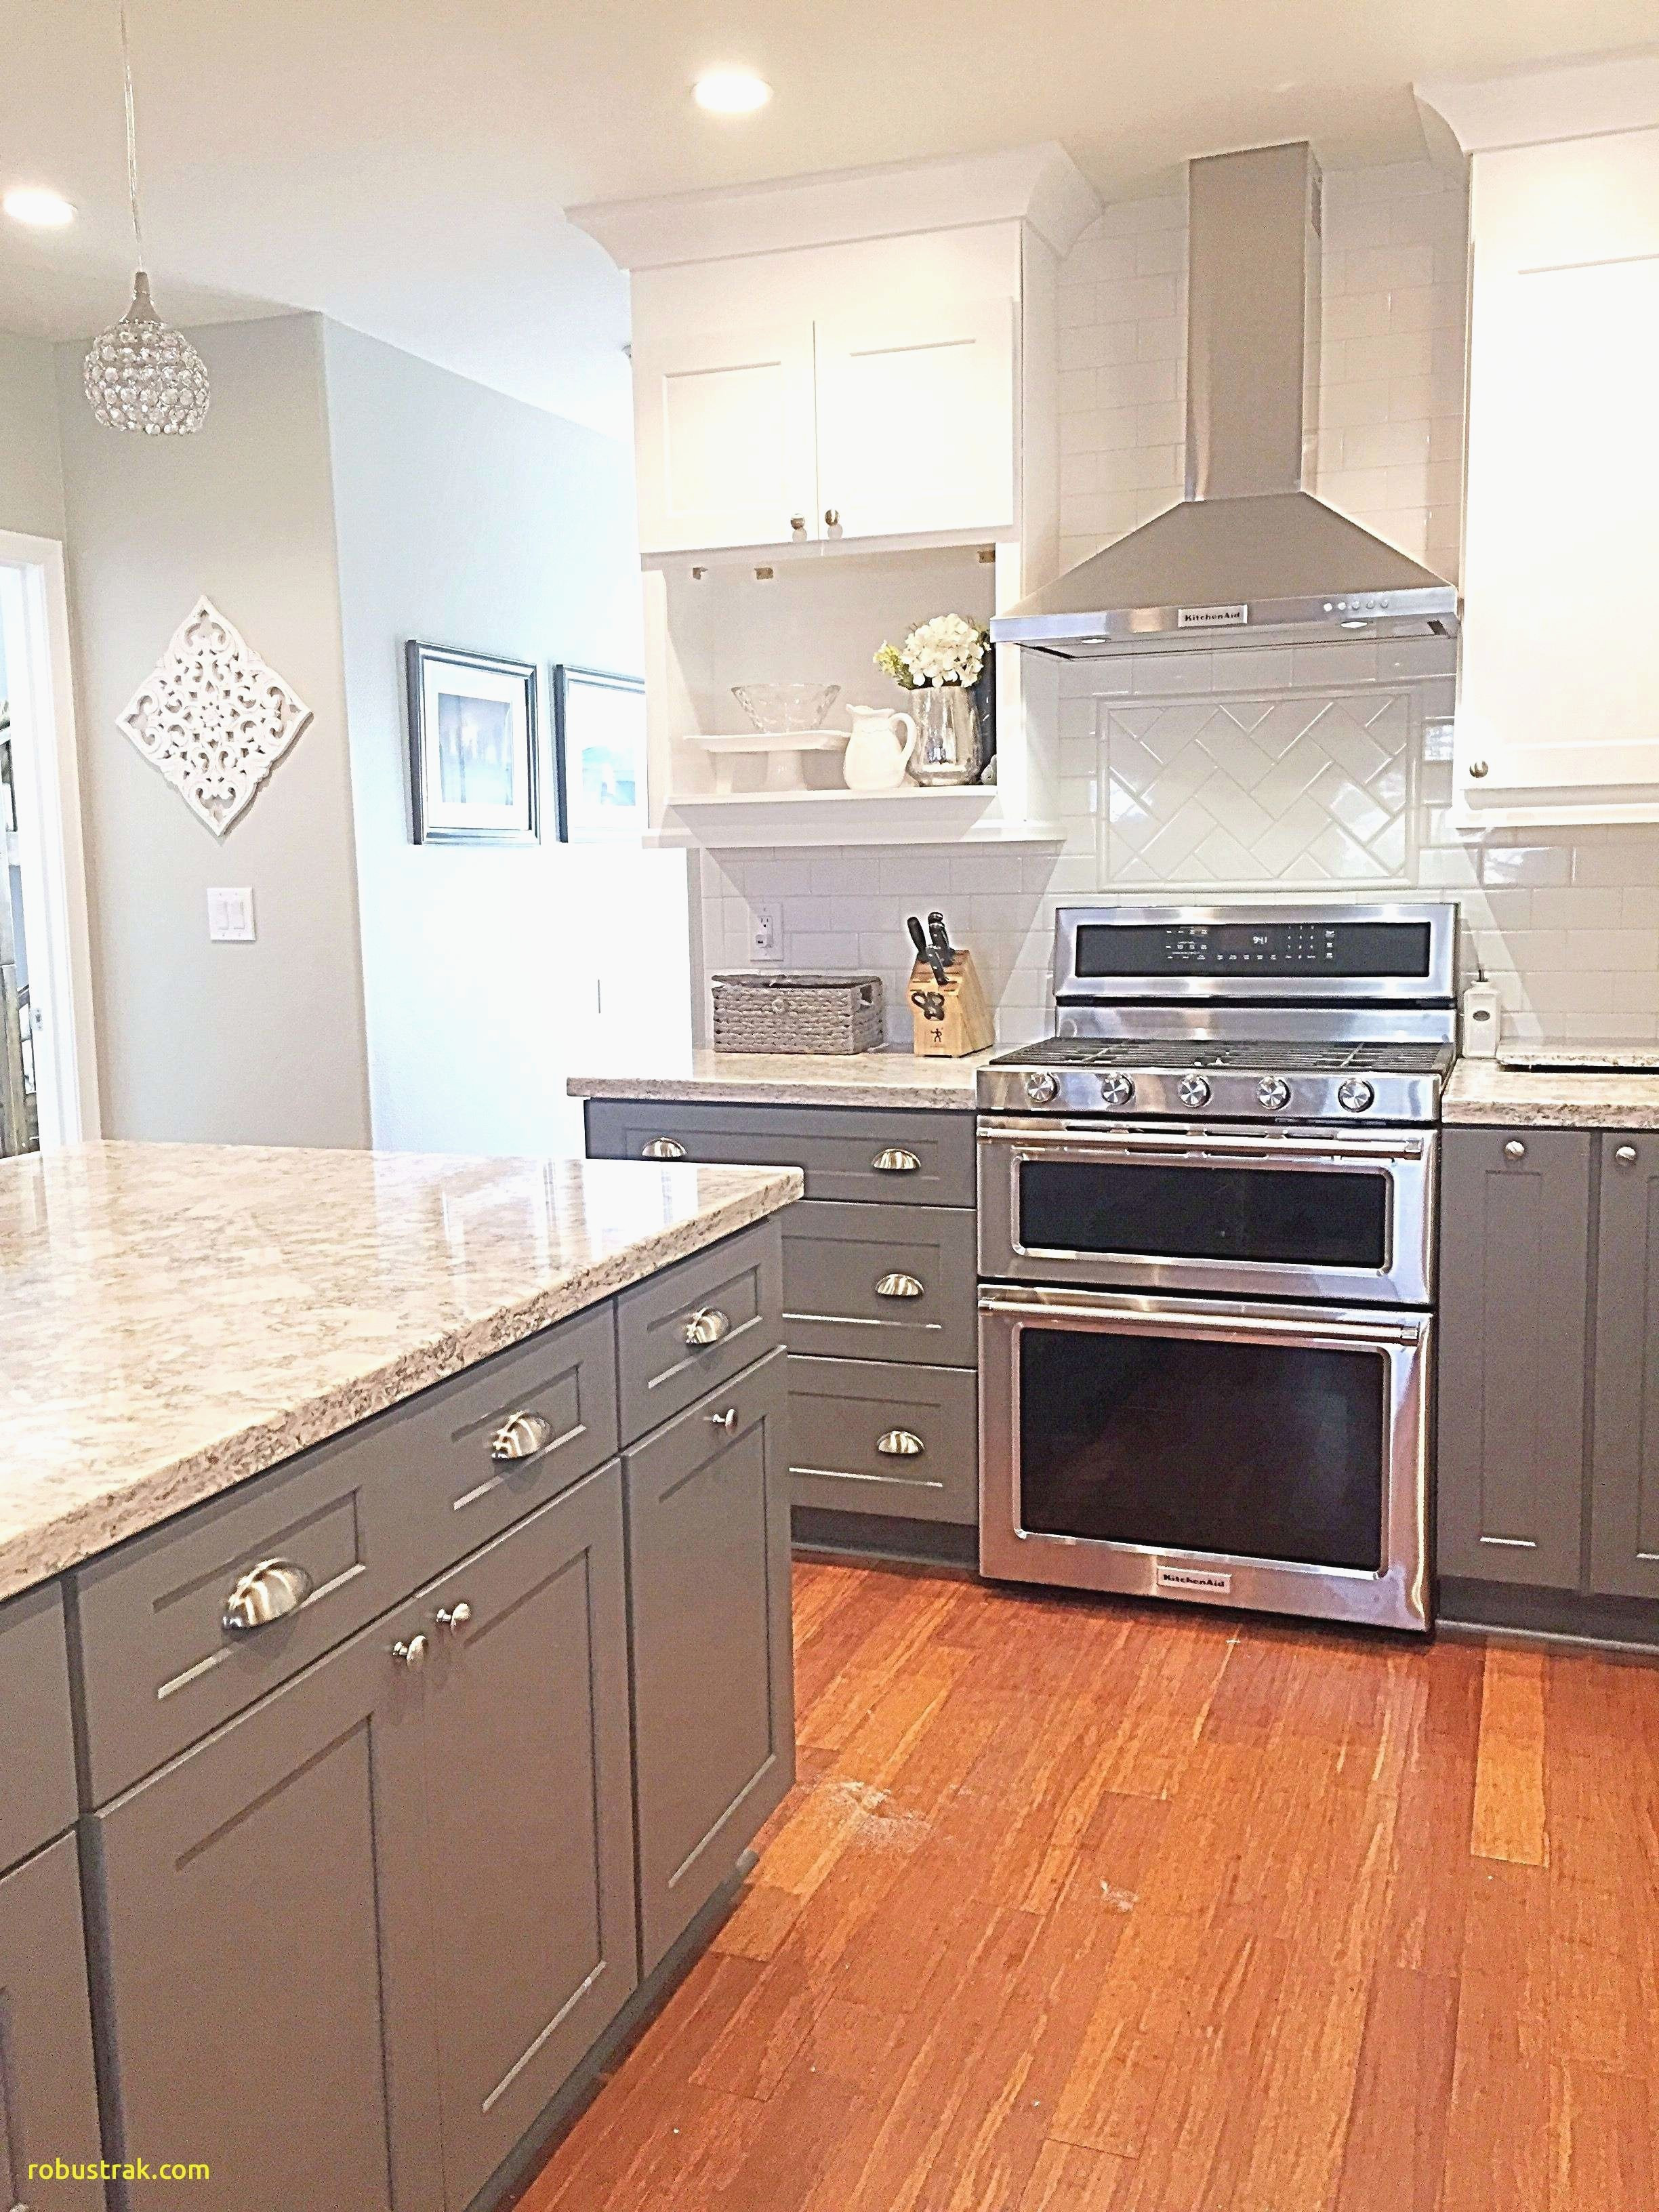 unfinished hardwood flooring prices of 18 inspirational hardwood flooring stock dizpos com regarding hardwood flooring awesome the most kitchen cabinet wood colors stock home ideas pictures